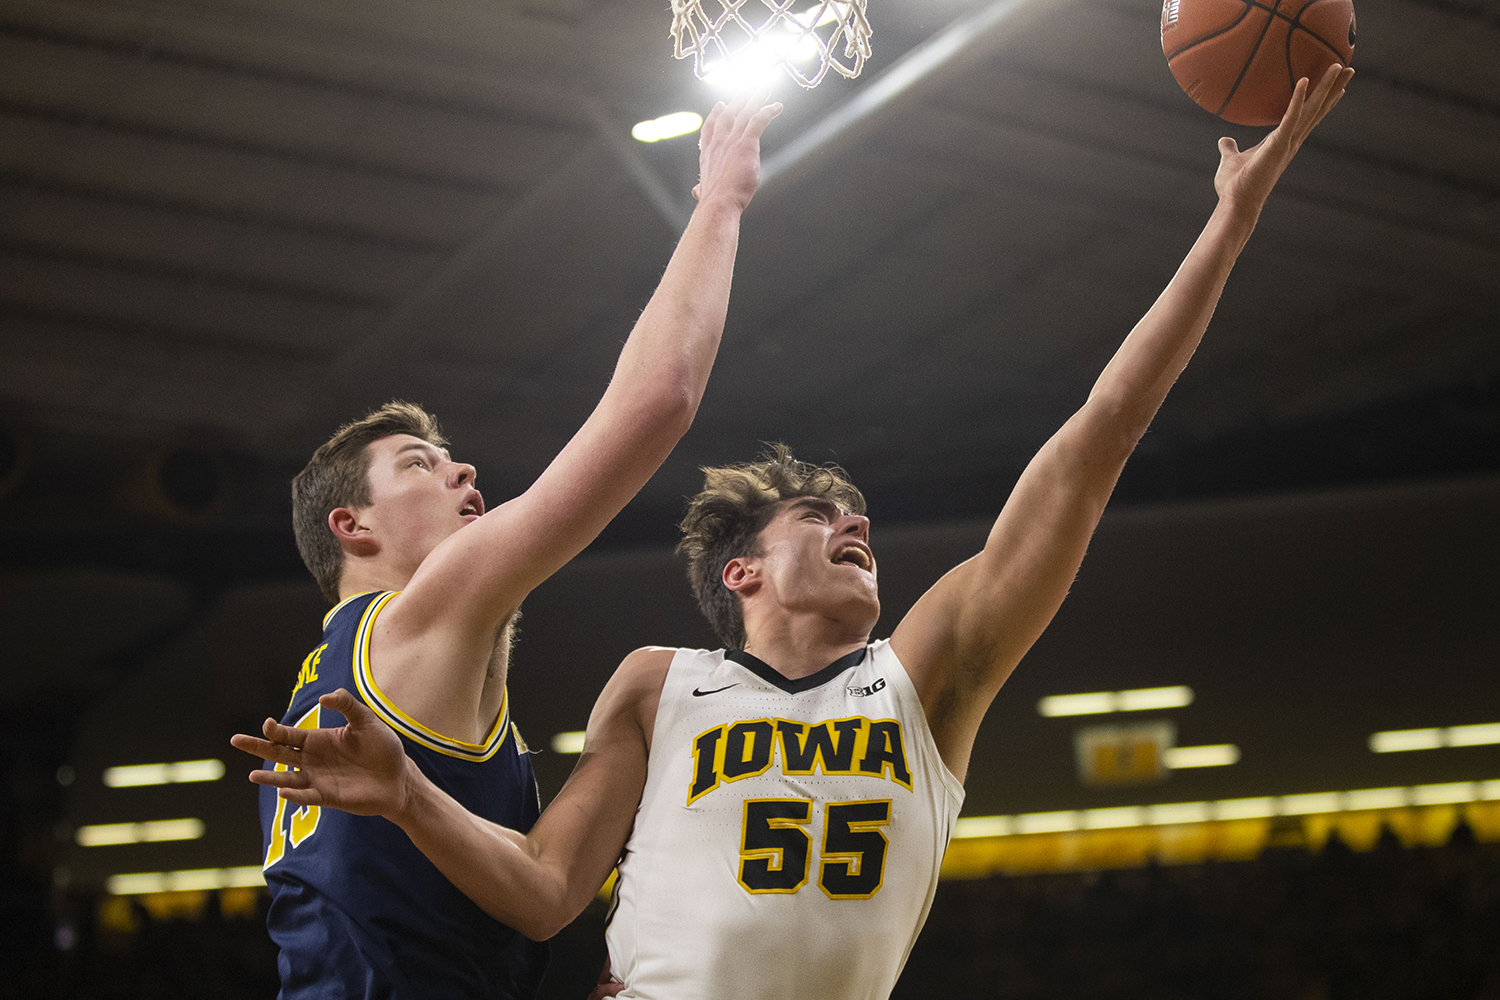 Iowa forward Luka Garza attempts a shot during the Iowa/Michigan men's basketball game at Carver-Hawkeye Arena on Friday, February 1, 2019. The Hawkeyes took down the No. 5 ranked Wolverines, 74-59.